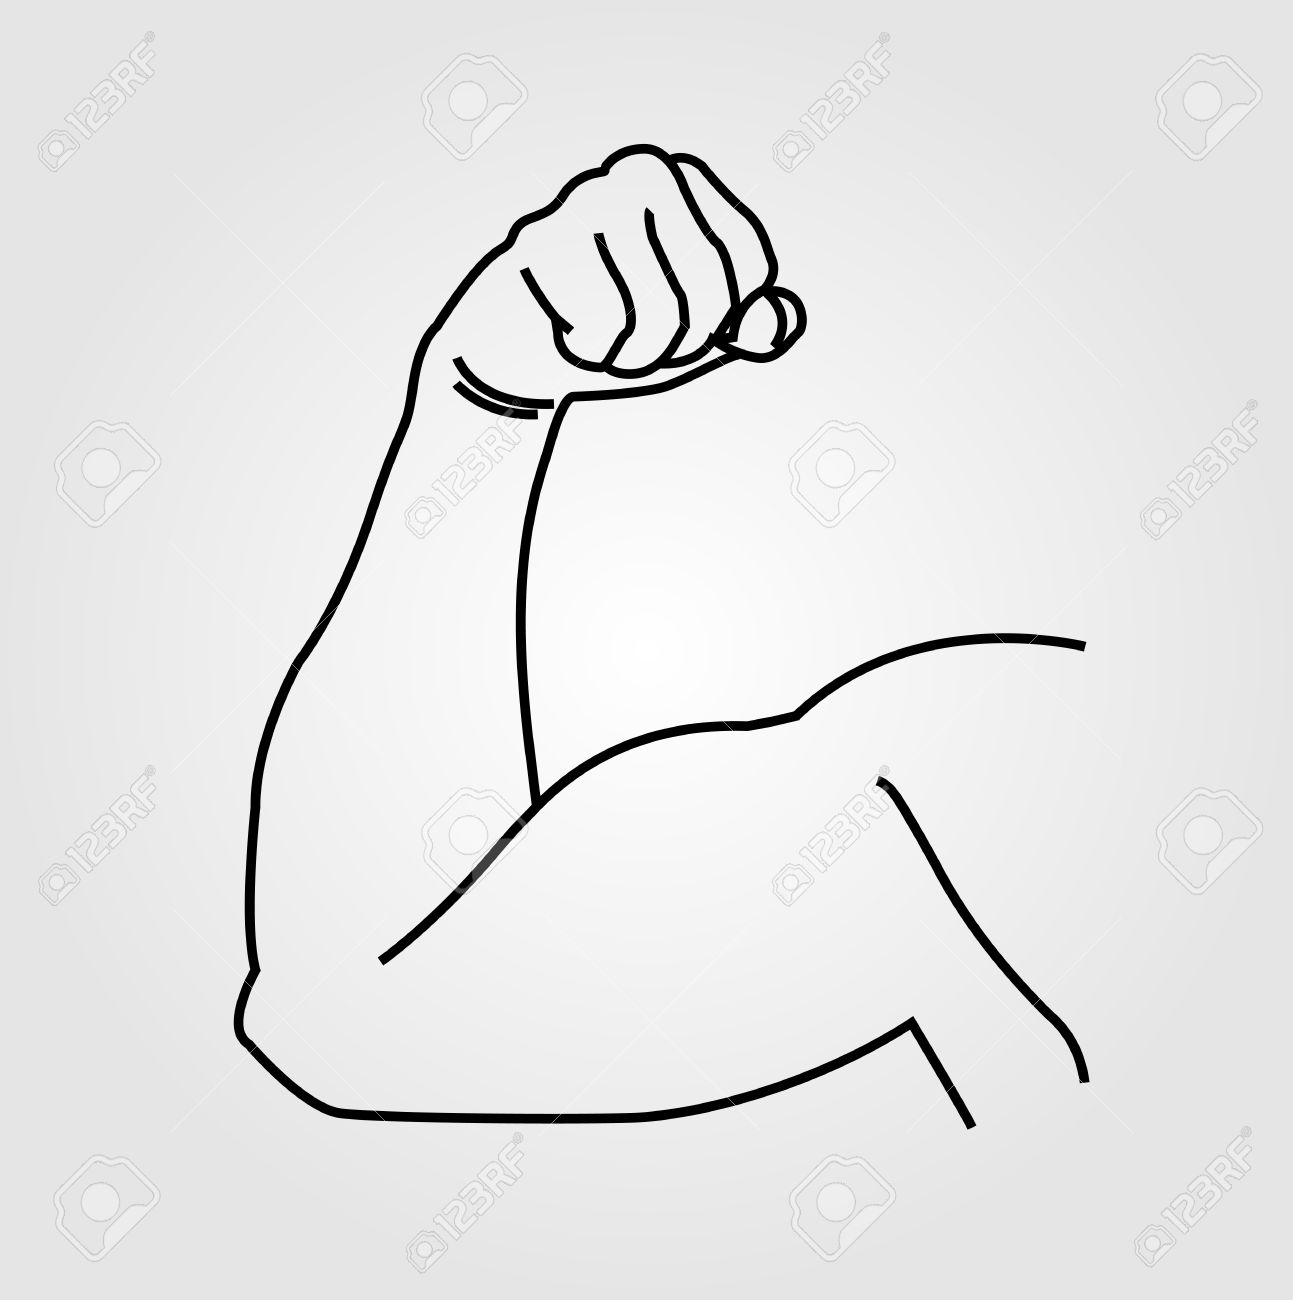 Abstract drawing of a man's arm flex.